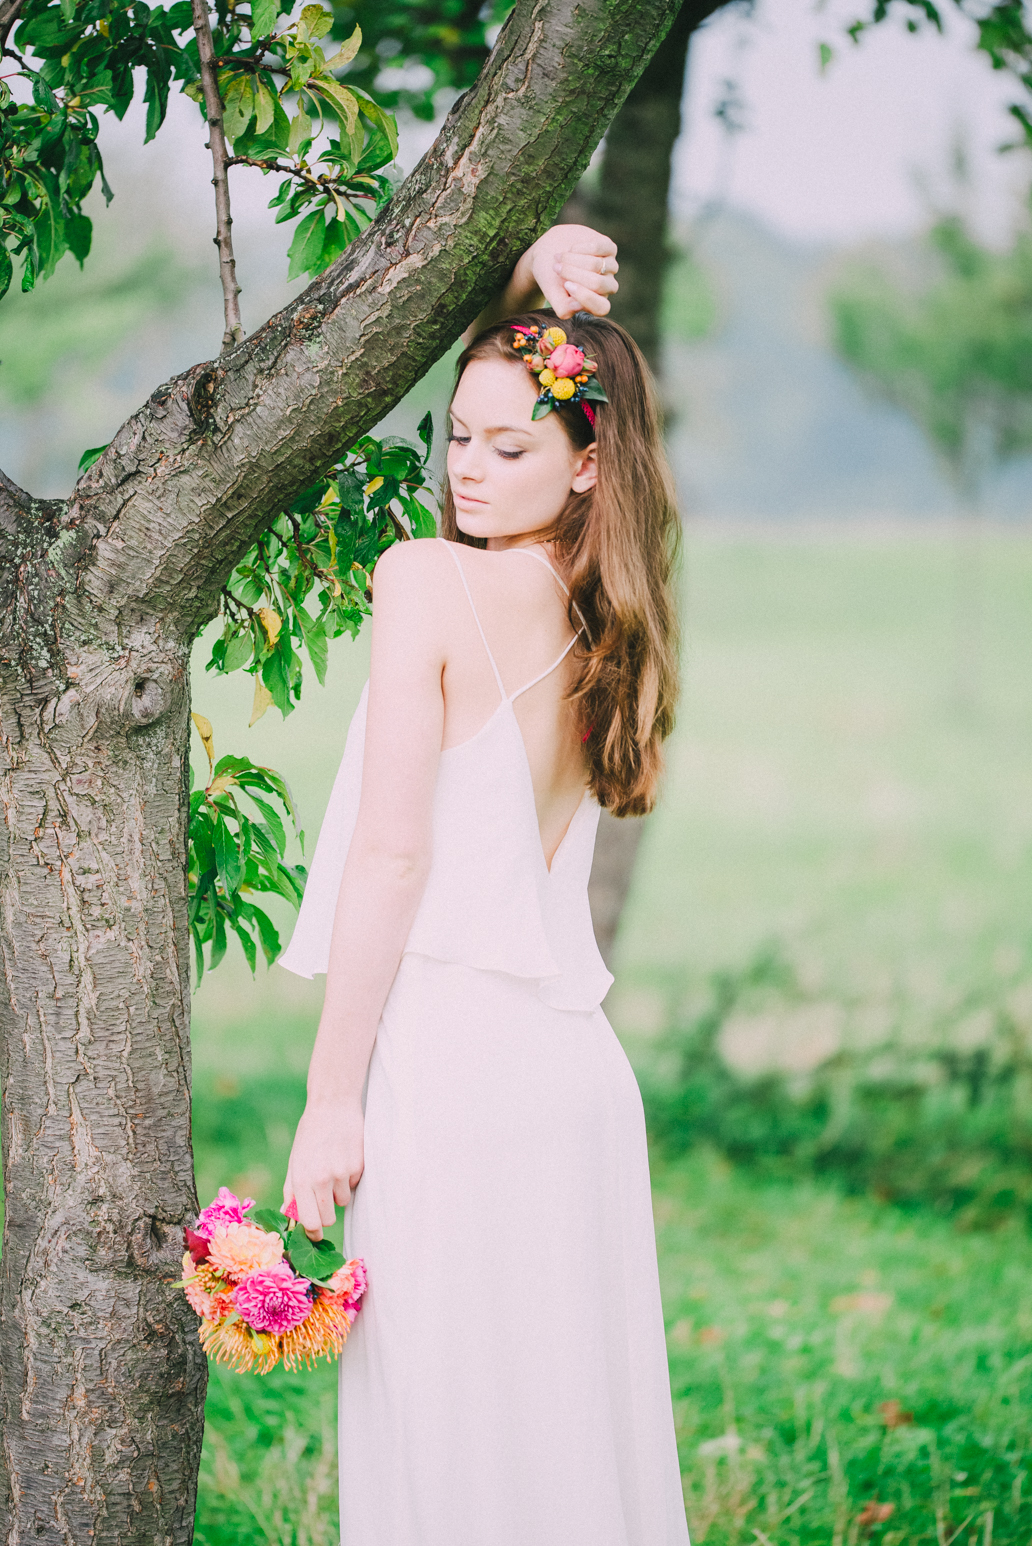 styled_shoot_pink_orange_julie_schoenewolf_fotografie-36